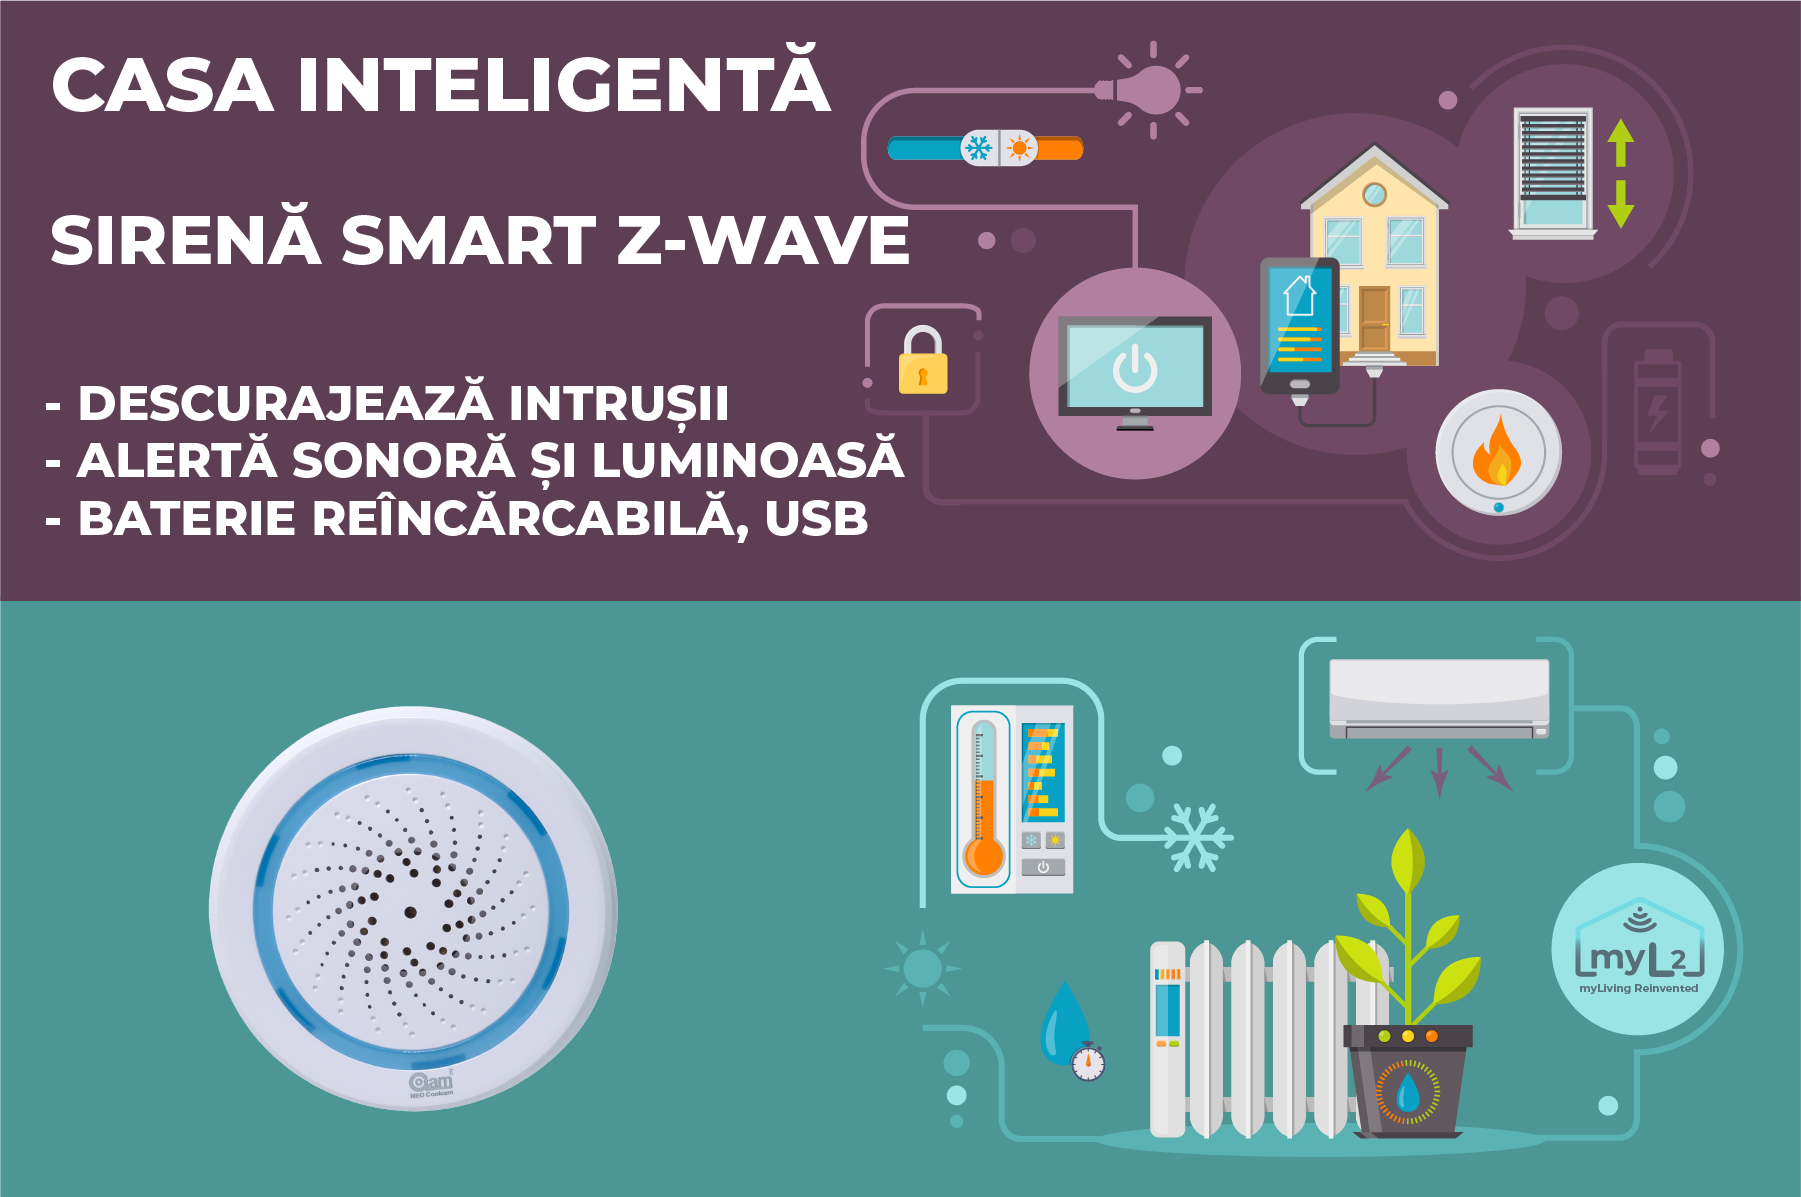 sirena smart zwave neo coolcam